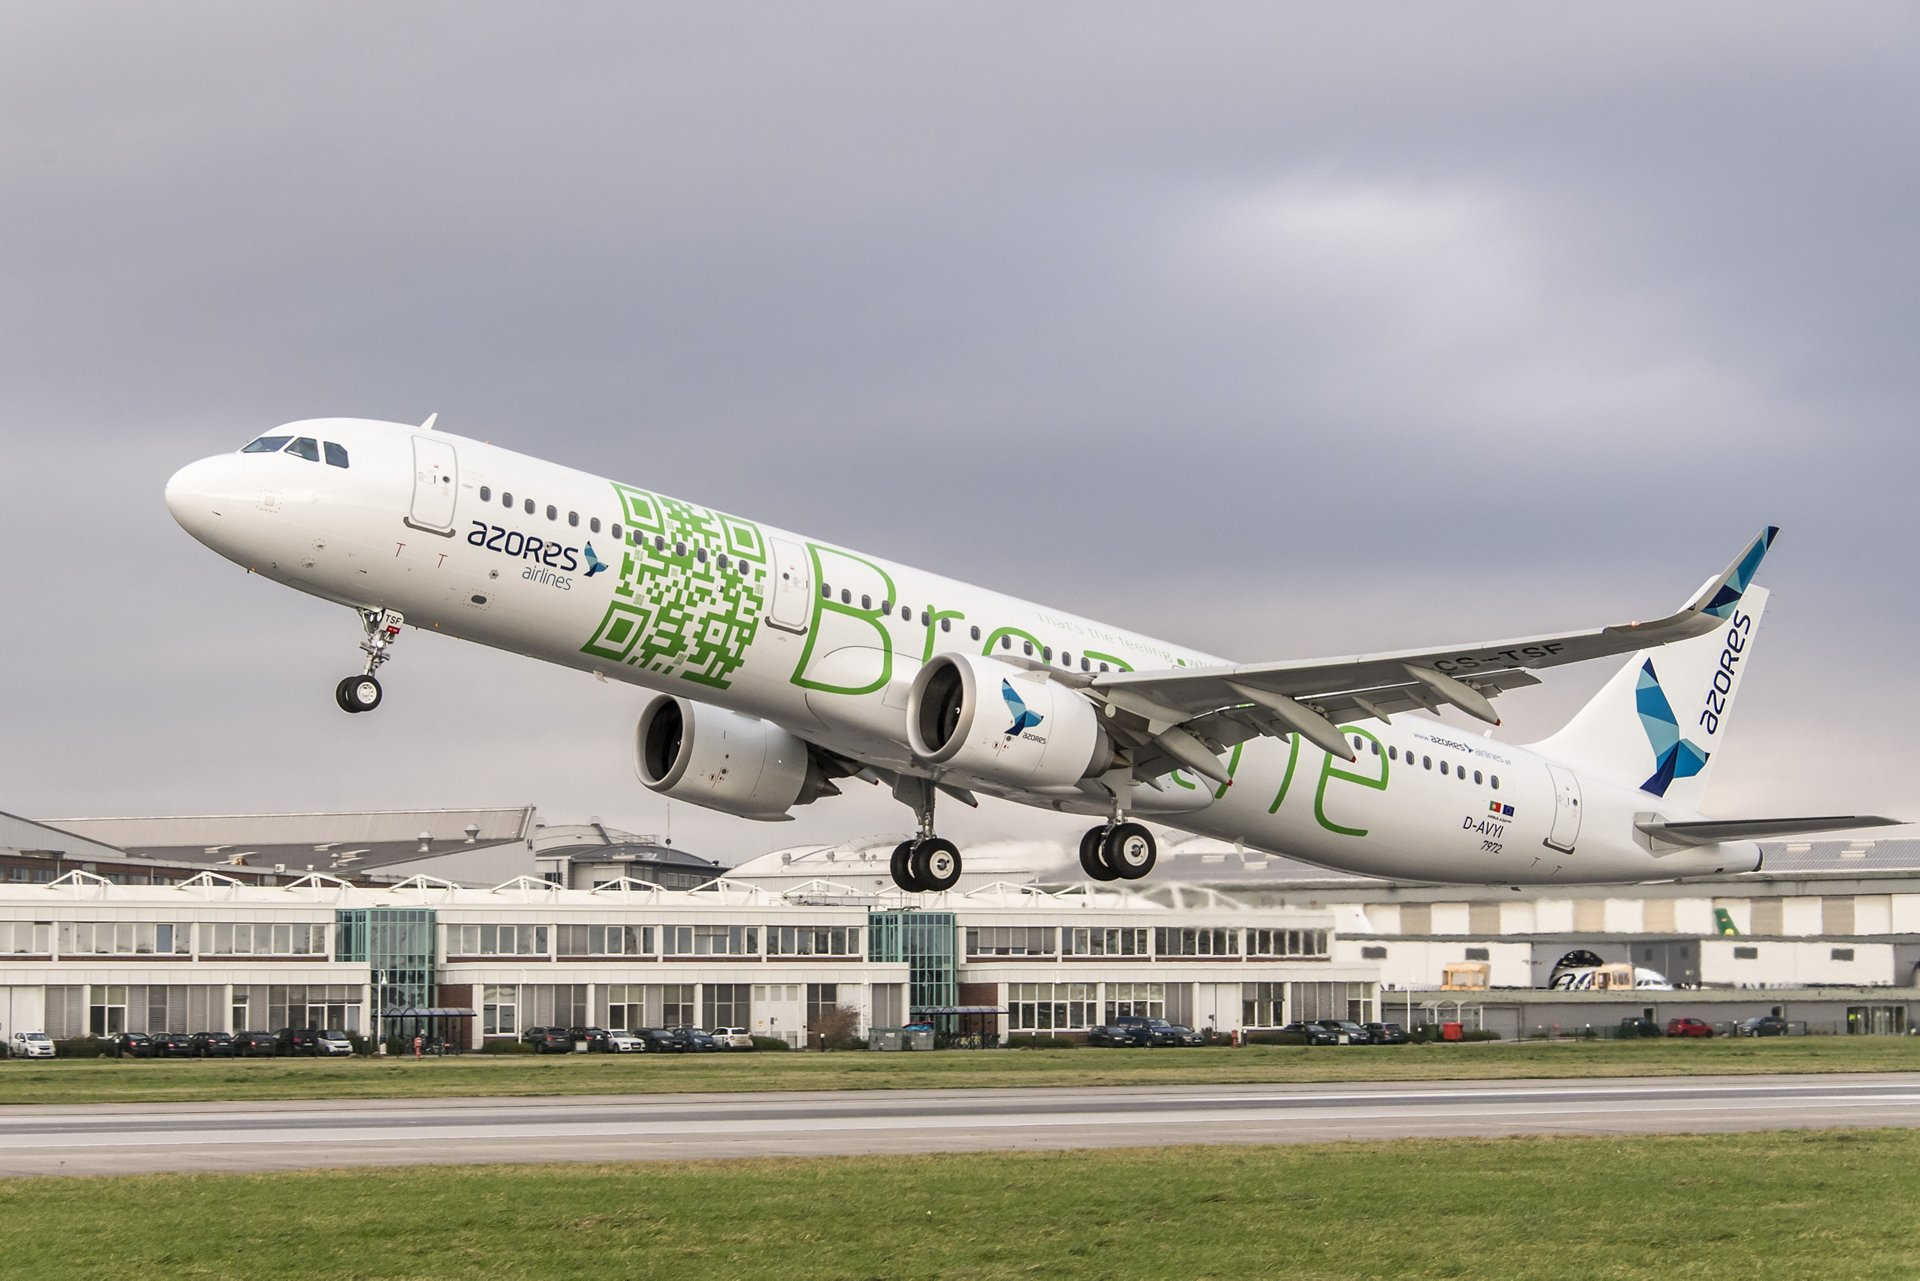 Azores Airlines' first A321neo taking off from the Airbus Hamburg site